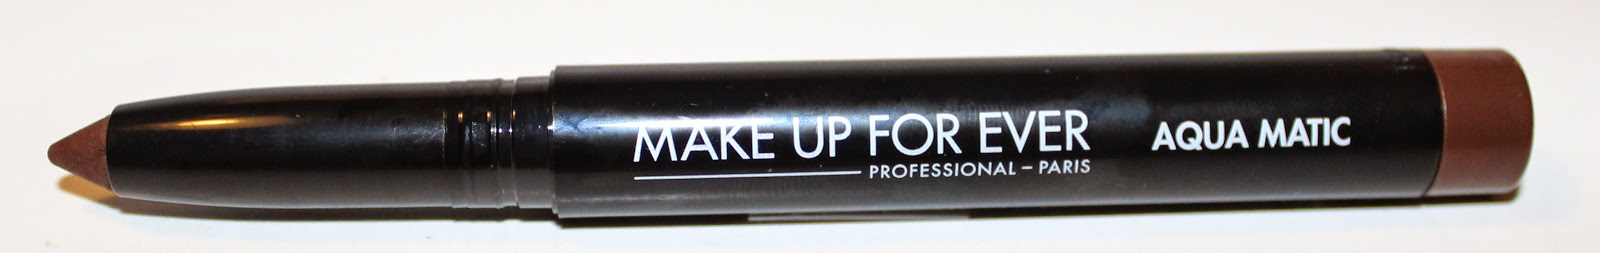 MAKE UP FOR EVER Aqua Matic #S-60 Satiny Warm Brown